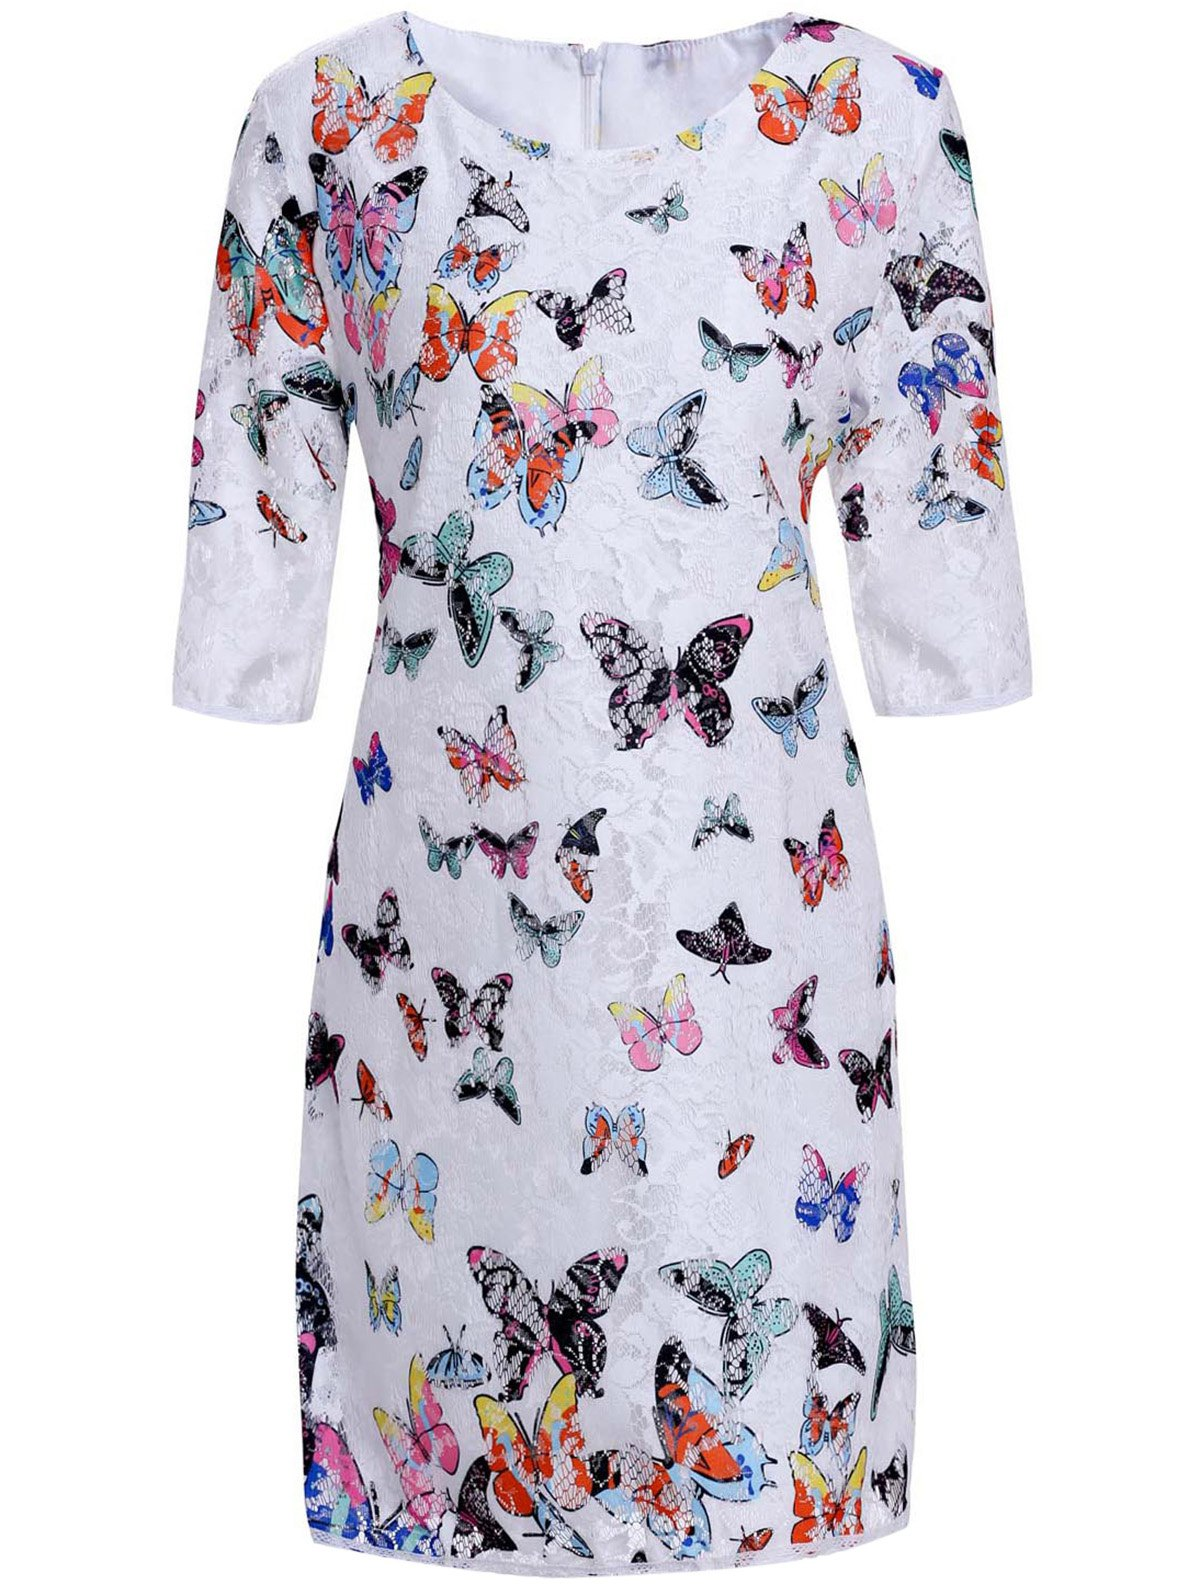 Affordable Butterfly 3/4 Sleeve Lace Sheath Dress